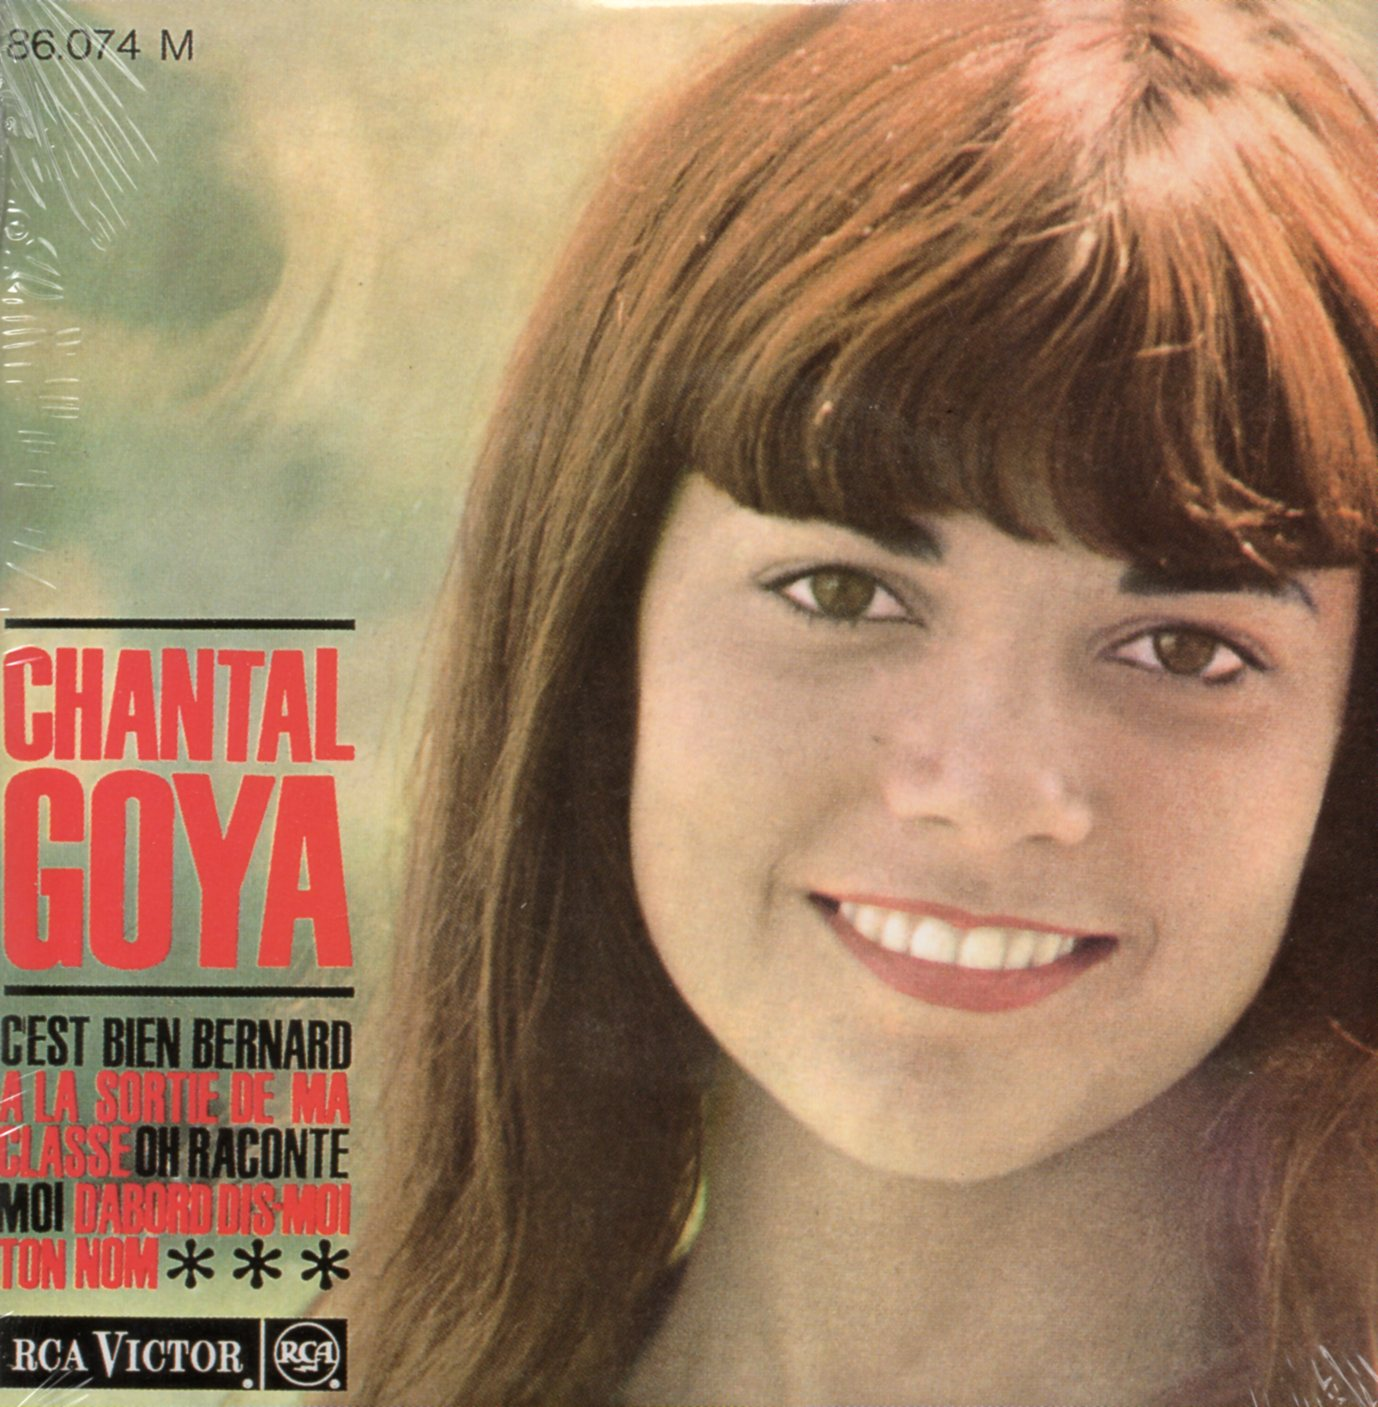 CHANTAL GOYA - C'est bien Bernard 4-TRACK CARD SLEEVE - CD single